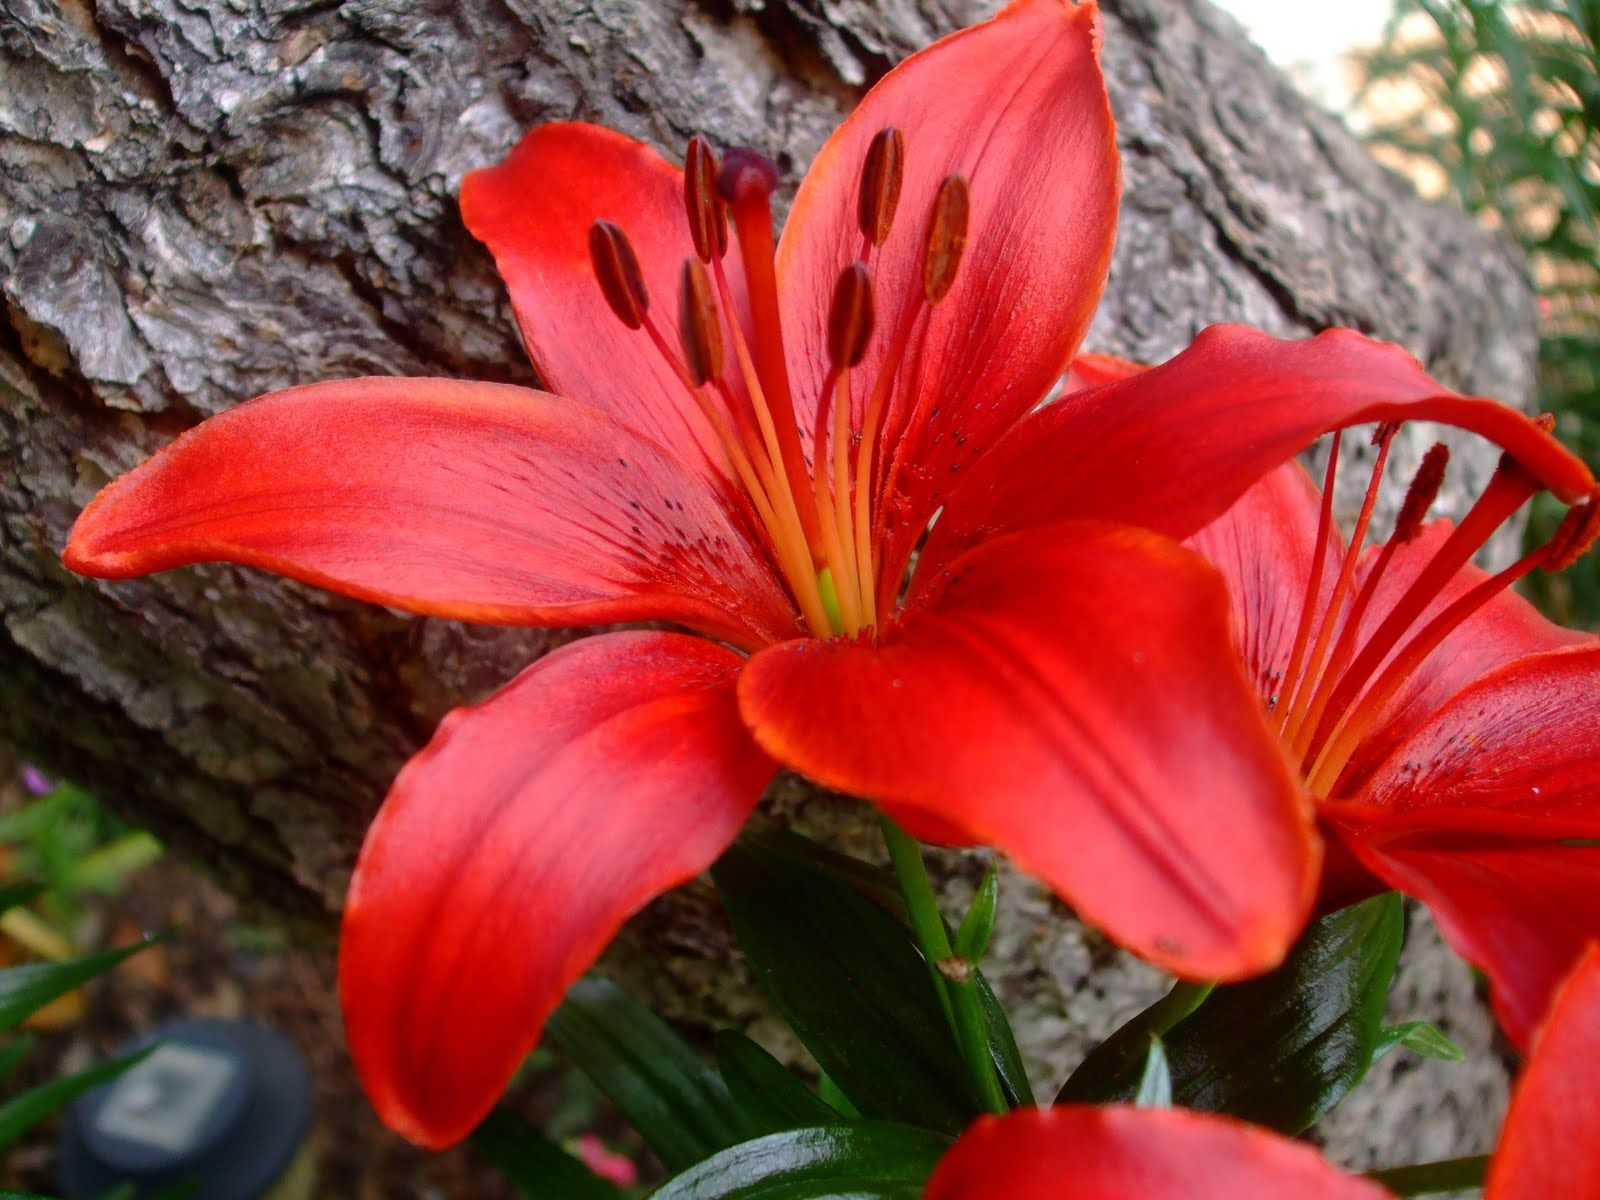 Flowers wallpapers red lilies flowers wallpapers flowers flowers wallpapers red lilies flowers wallpapers izmirmasajfo